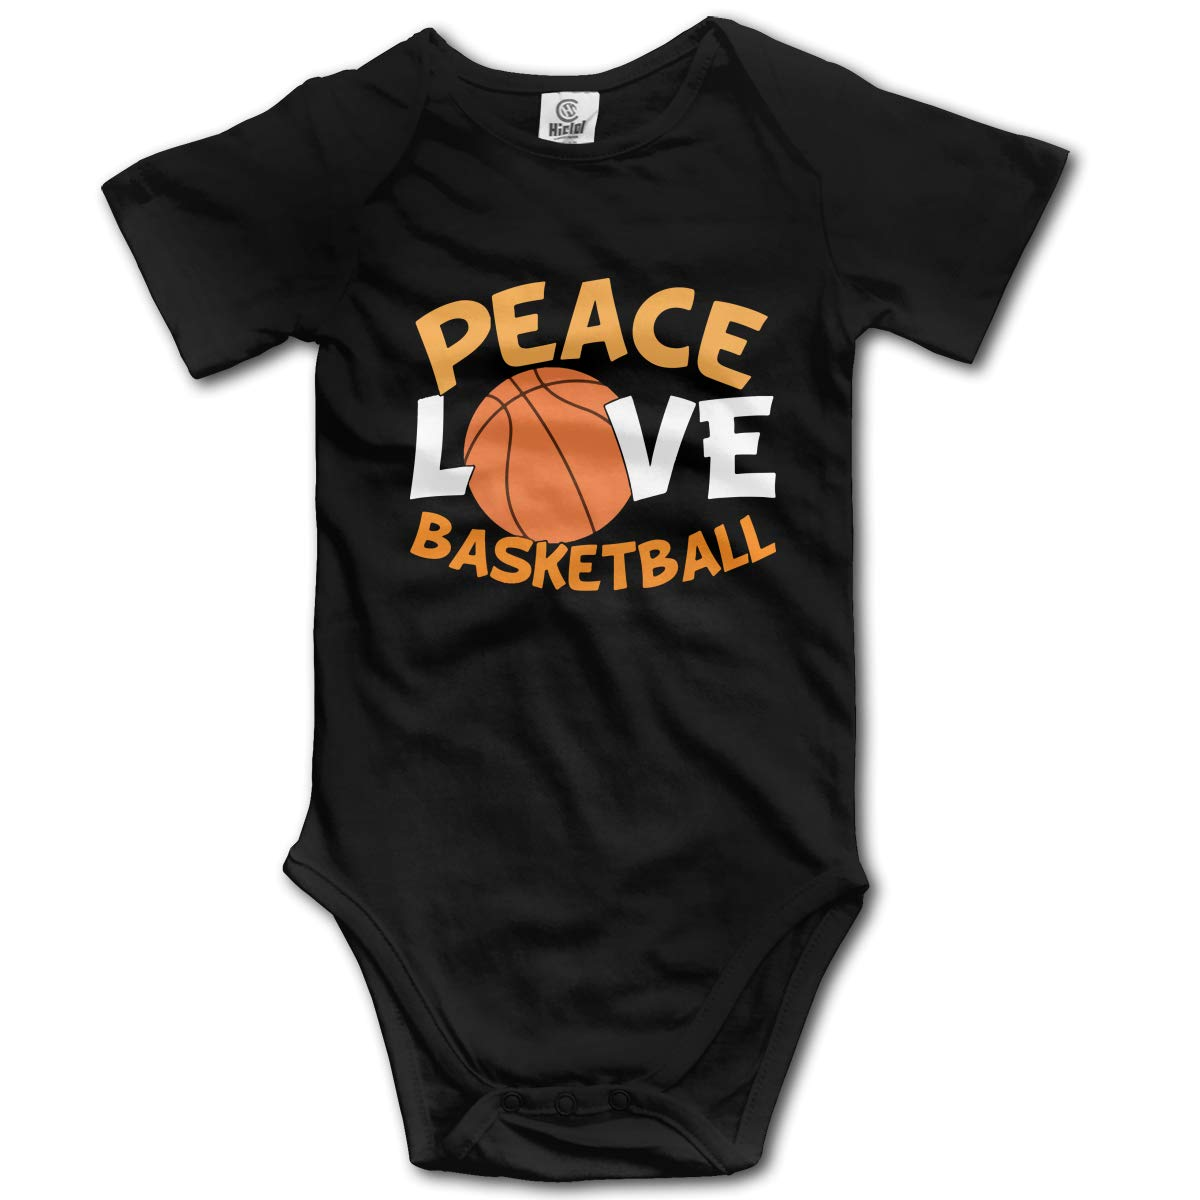 Love Basketball Suit 6-24 Months Baby Short Sleeve Climbing Clothes